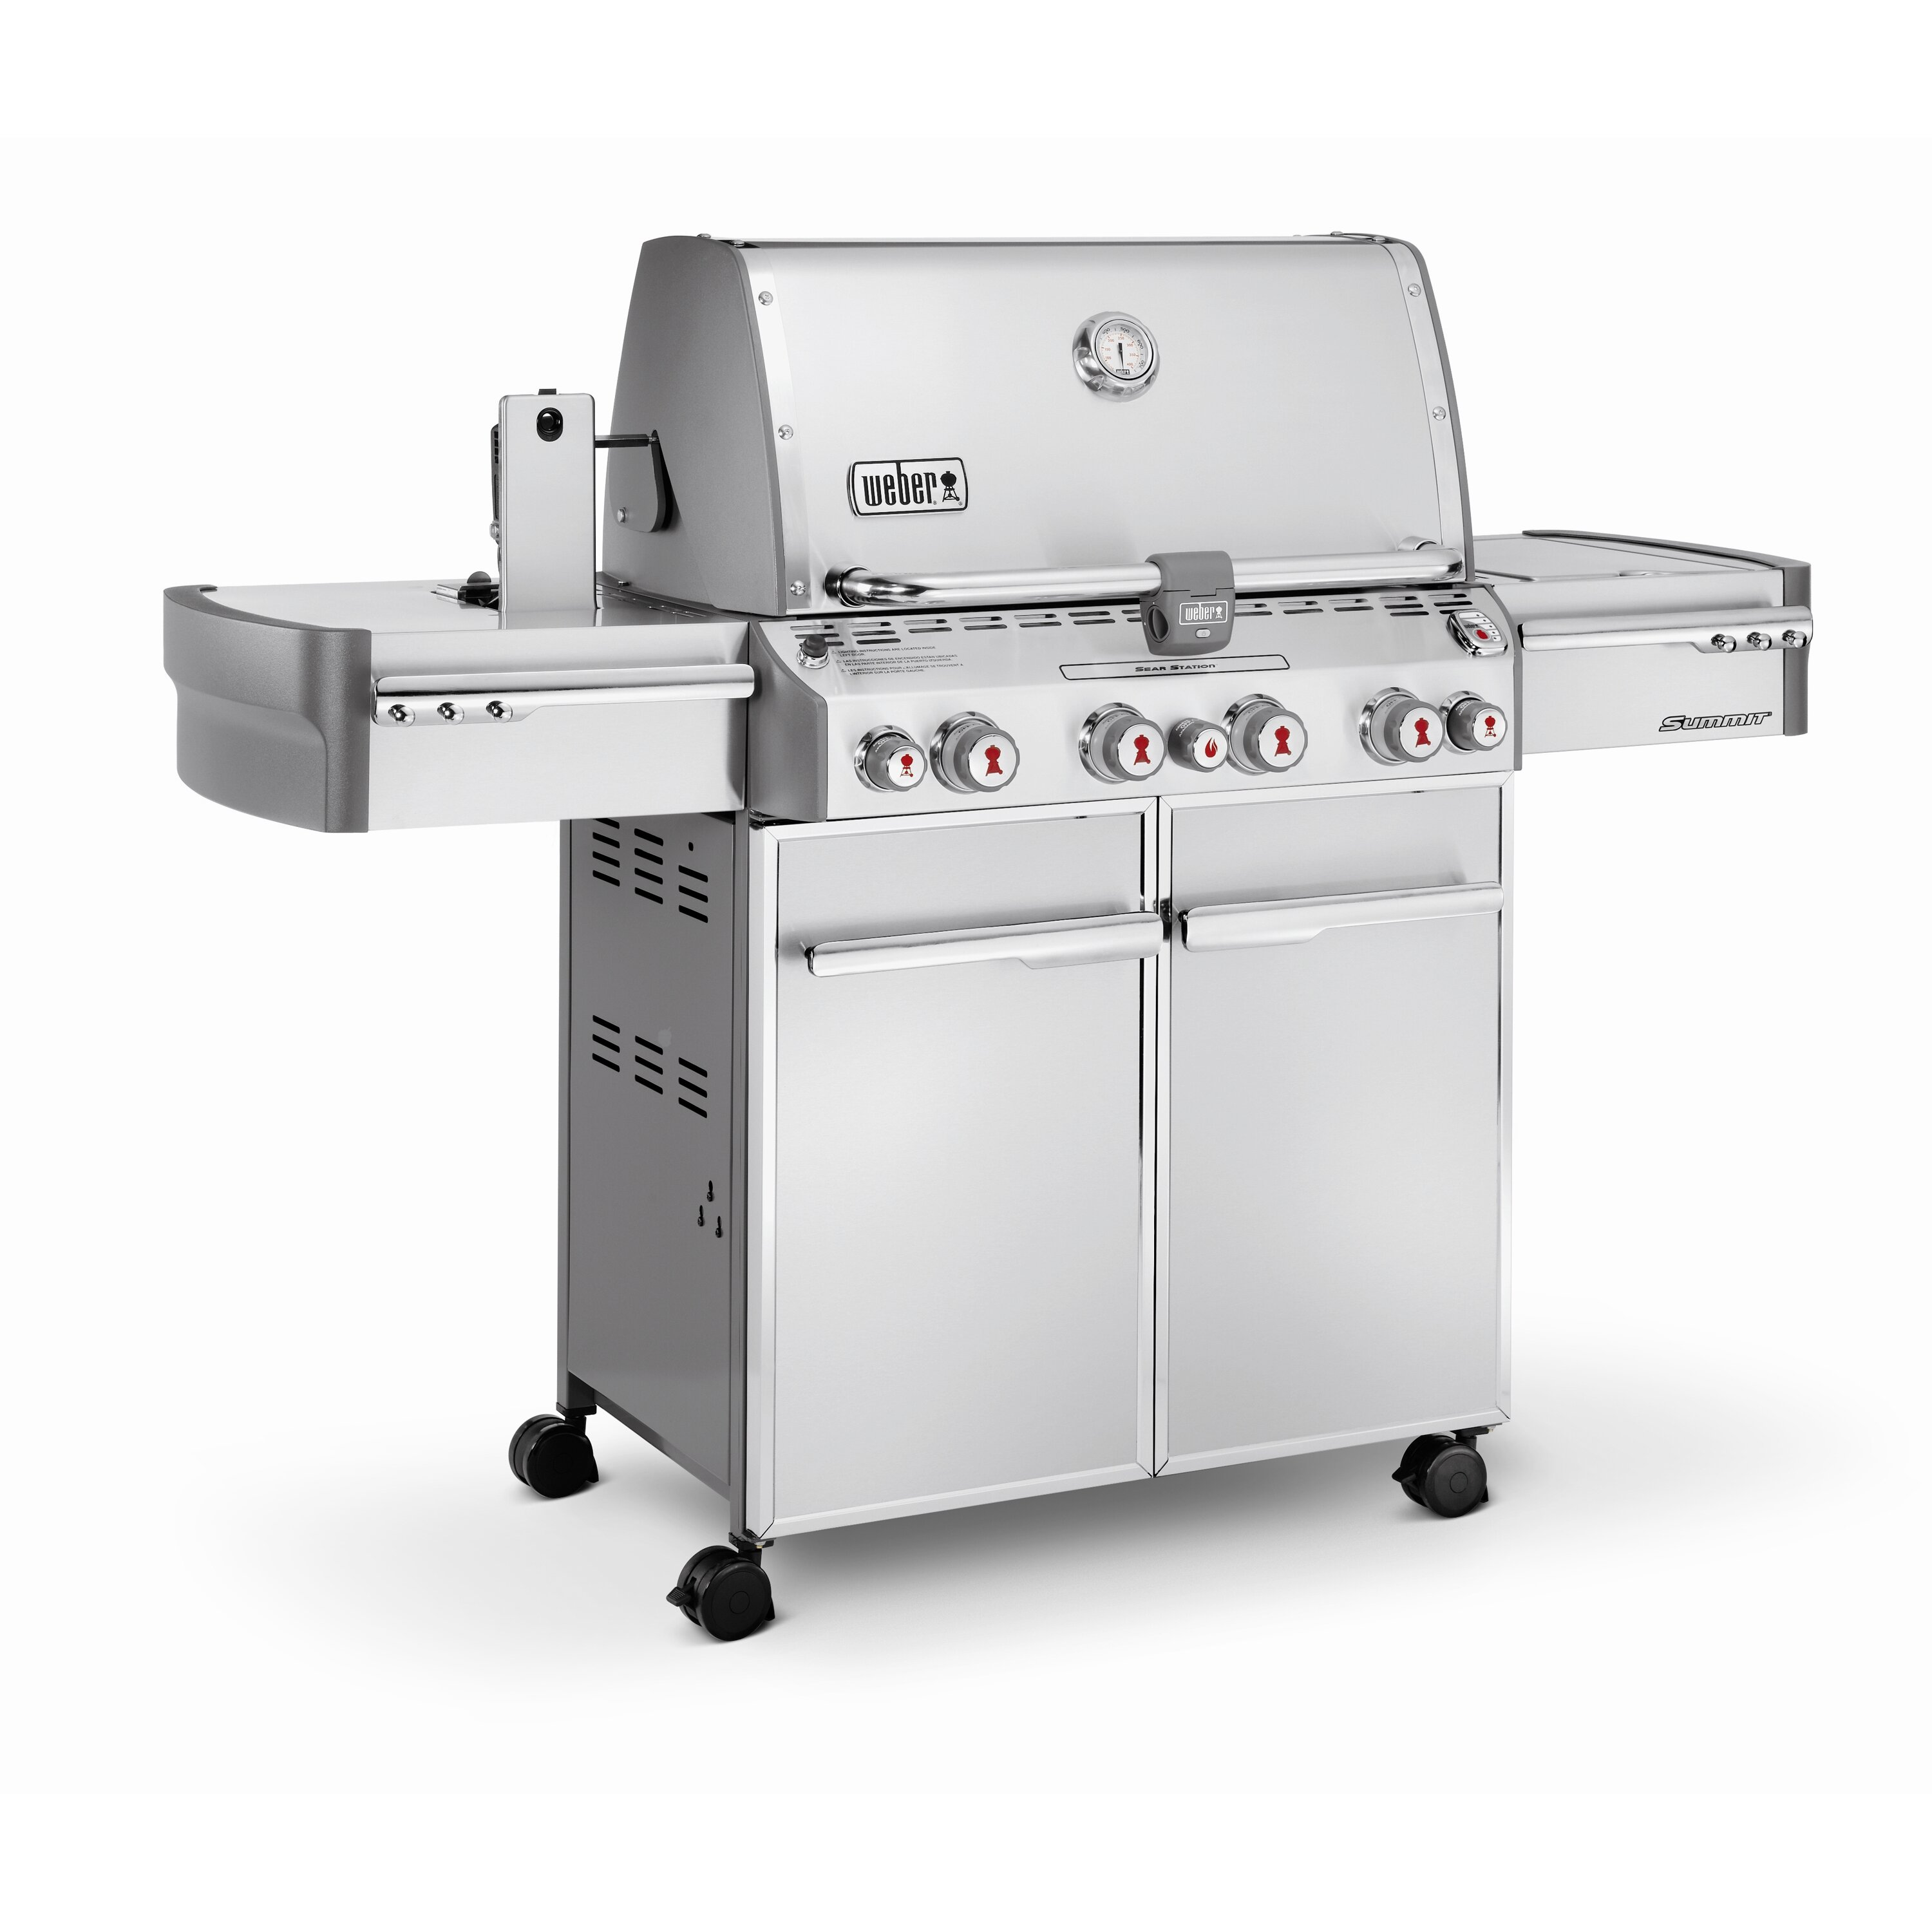 weber summit s 470 gas grill reviews wayfair. Black Bedroom Furniture Sets. Home Design Ideas